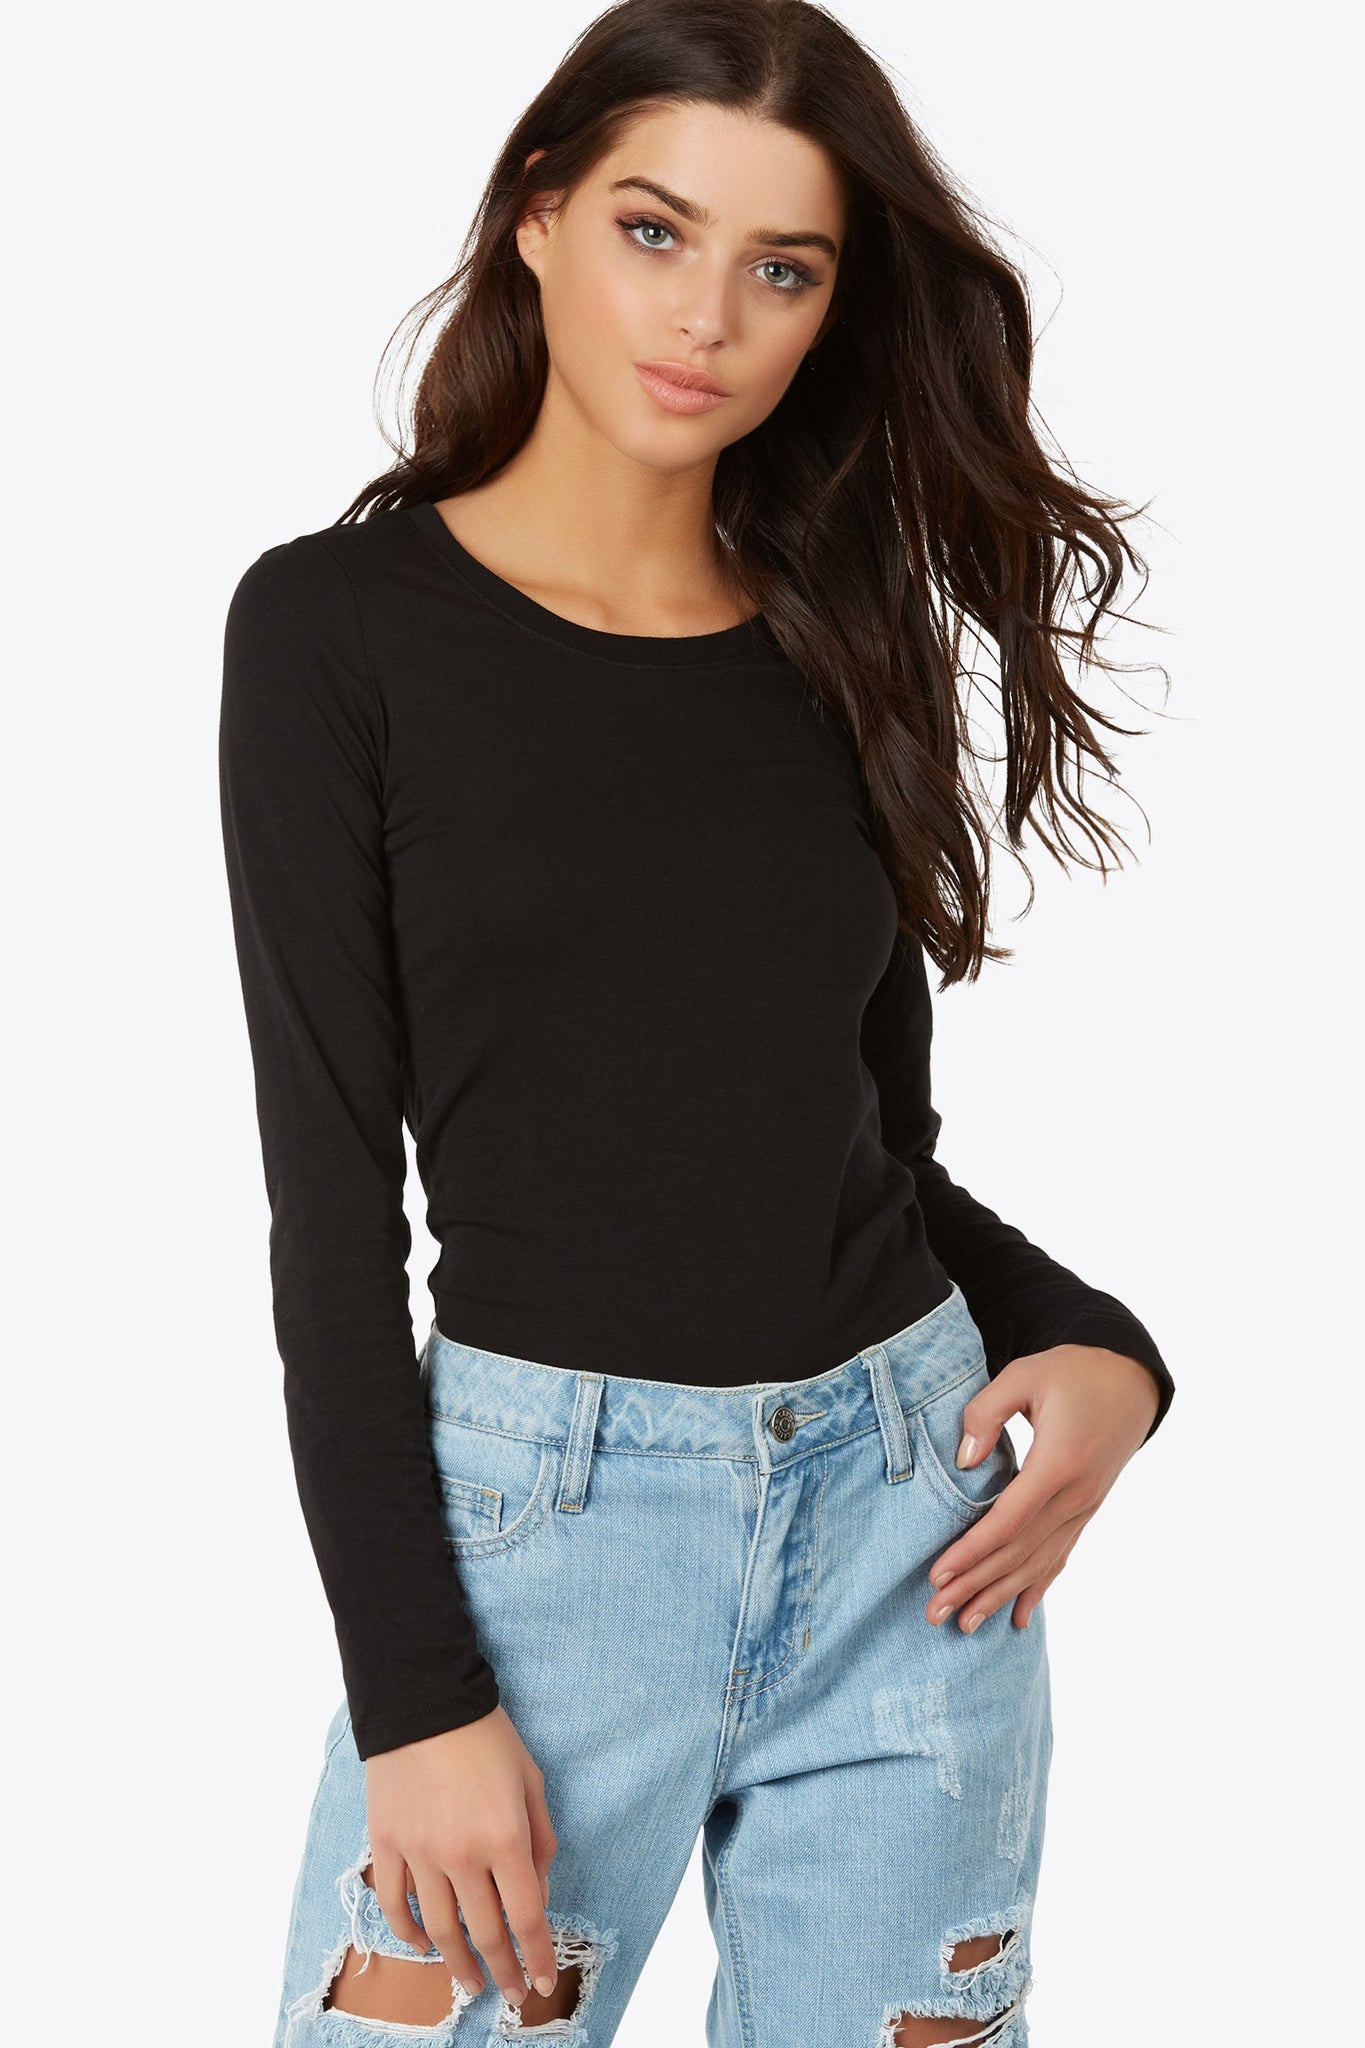 Add this staple top to any look, casual or chic. Close-to-body fit Long sleeve top with round neckline.